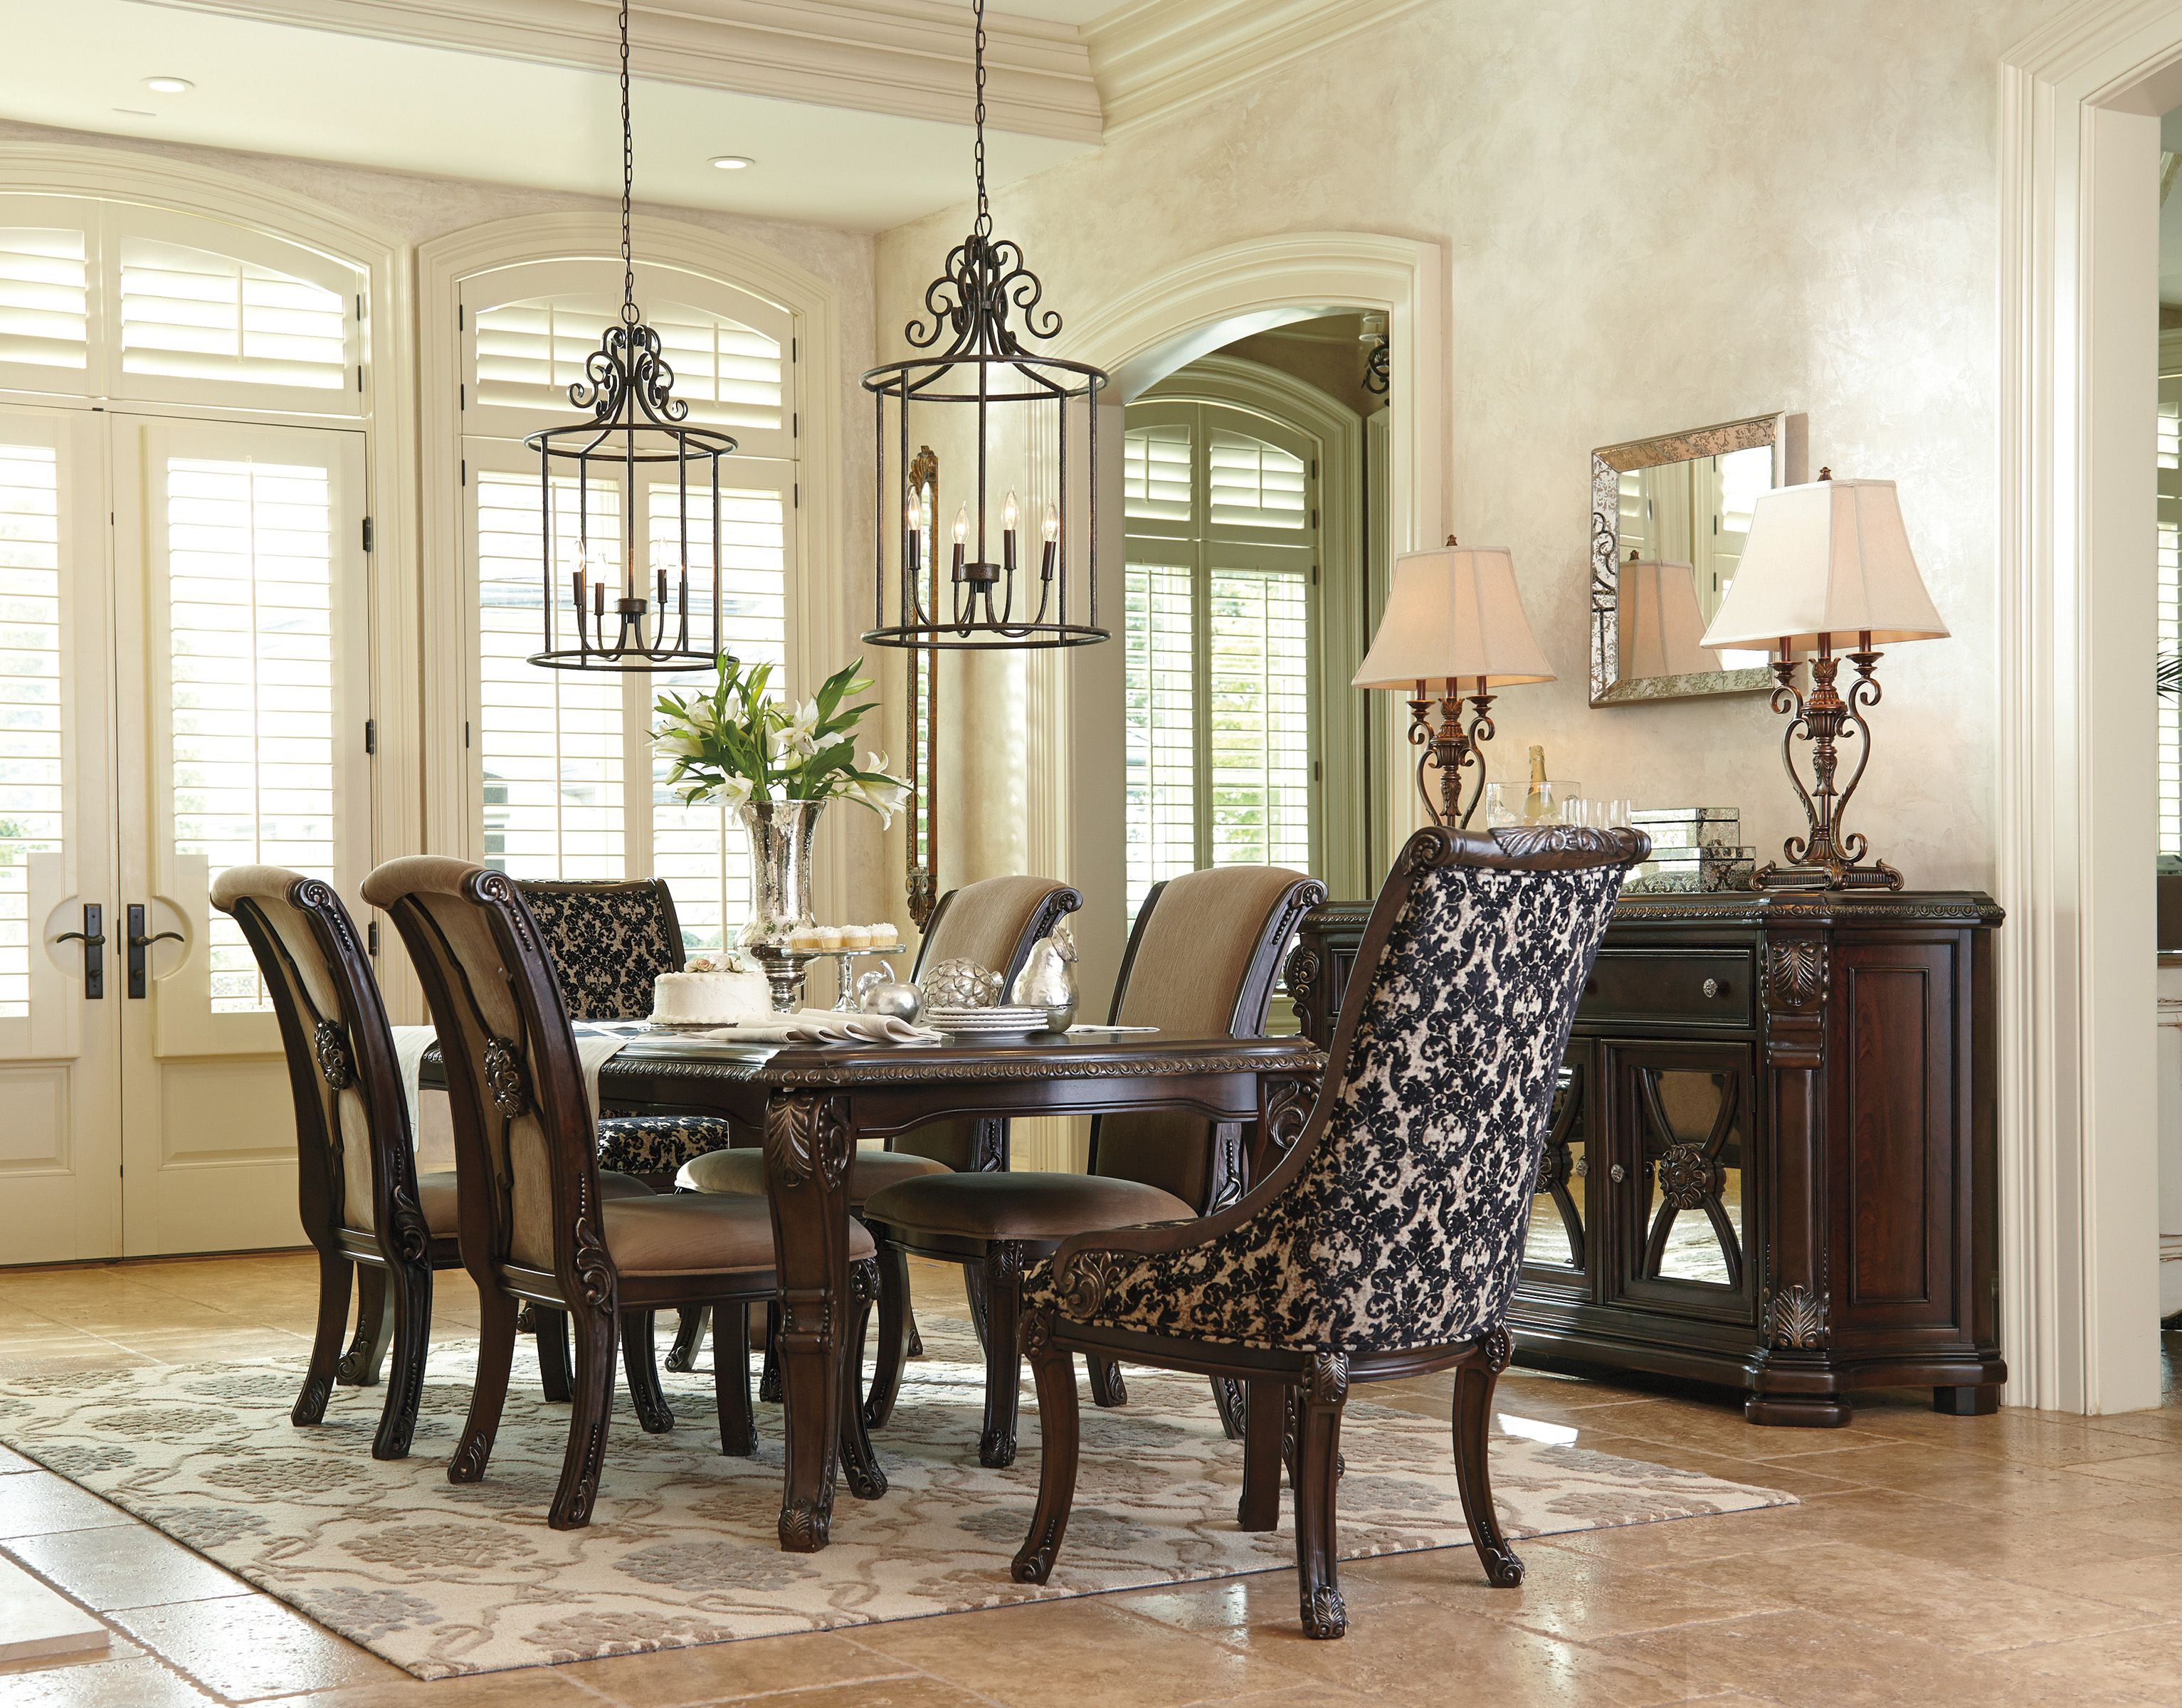 Excellent Valraven 7 Piece Dining Room Grand Elegance Dining Room Gamerscity Chair Design For Home Gamerscityorg